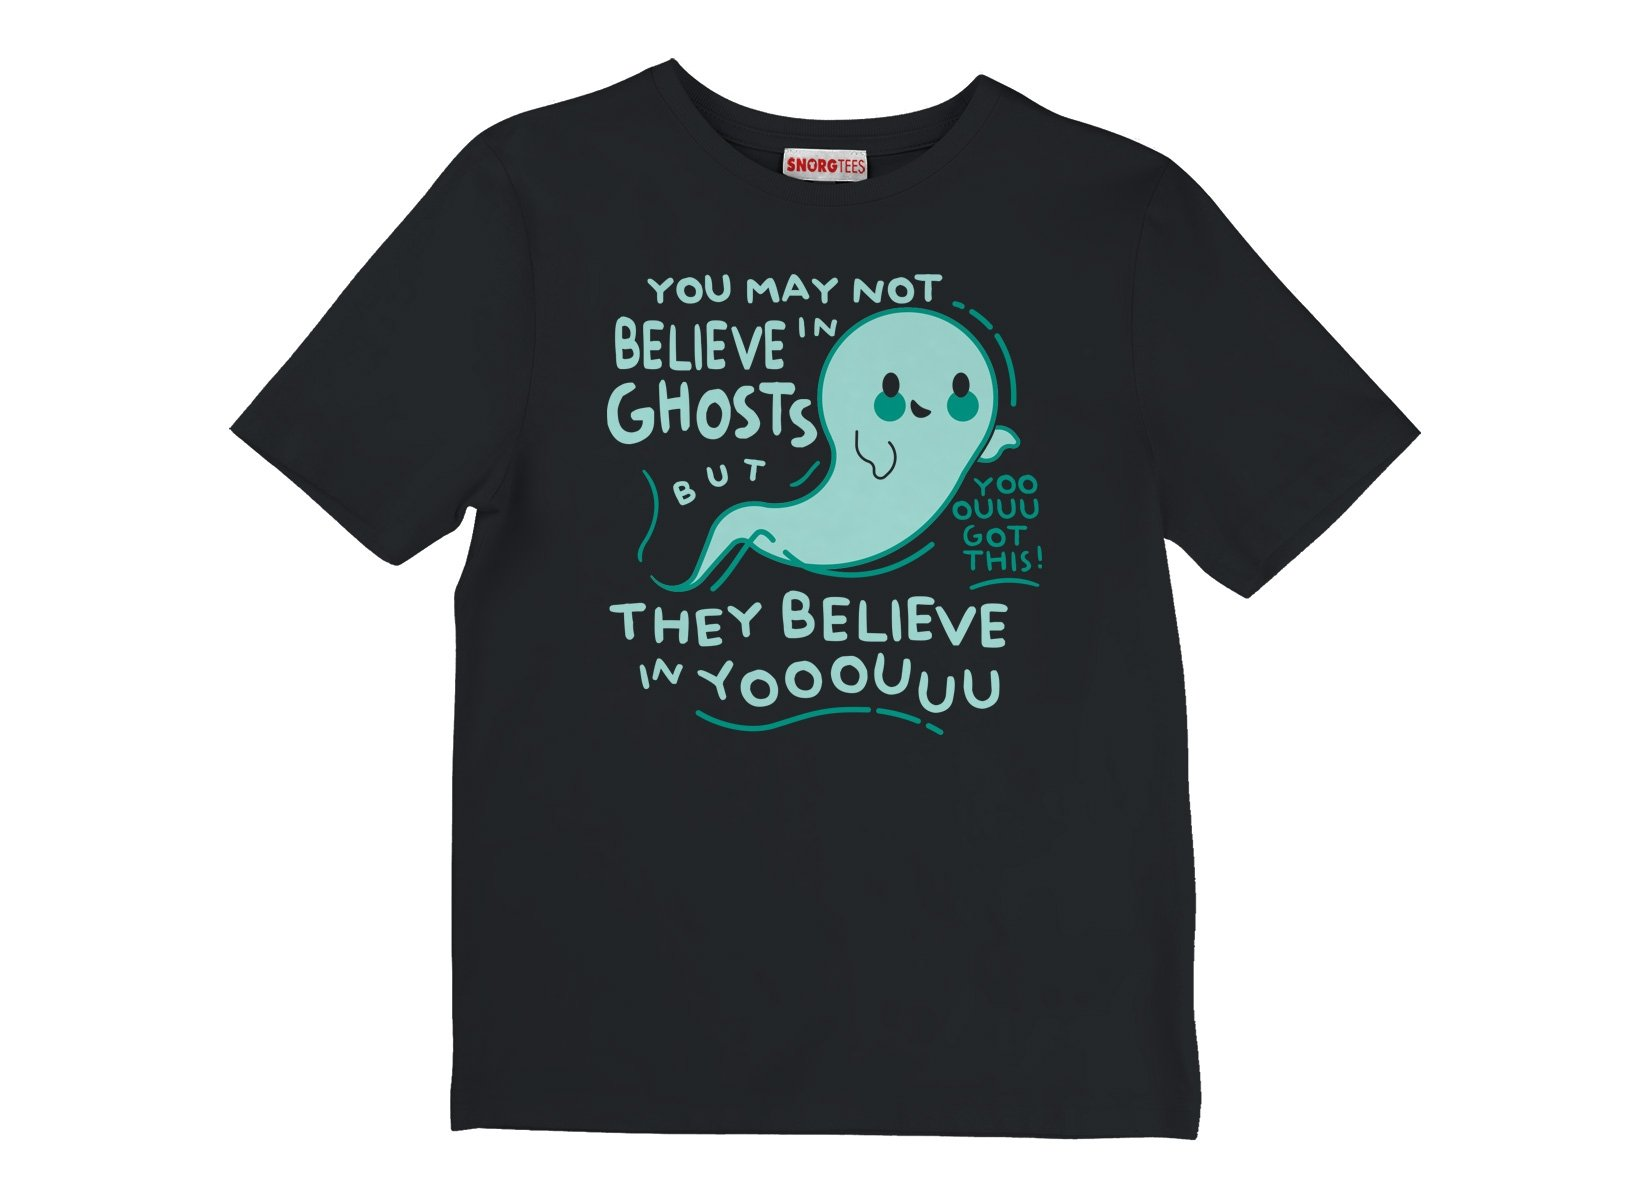 You May Not Believe In Ghosts on Kids T-Shirt